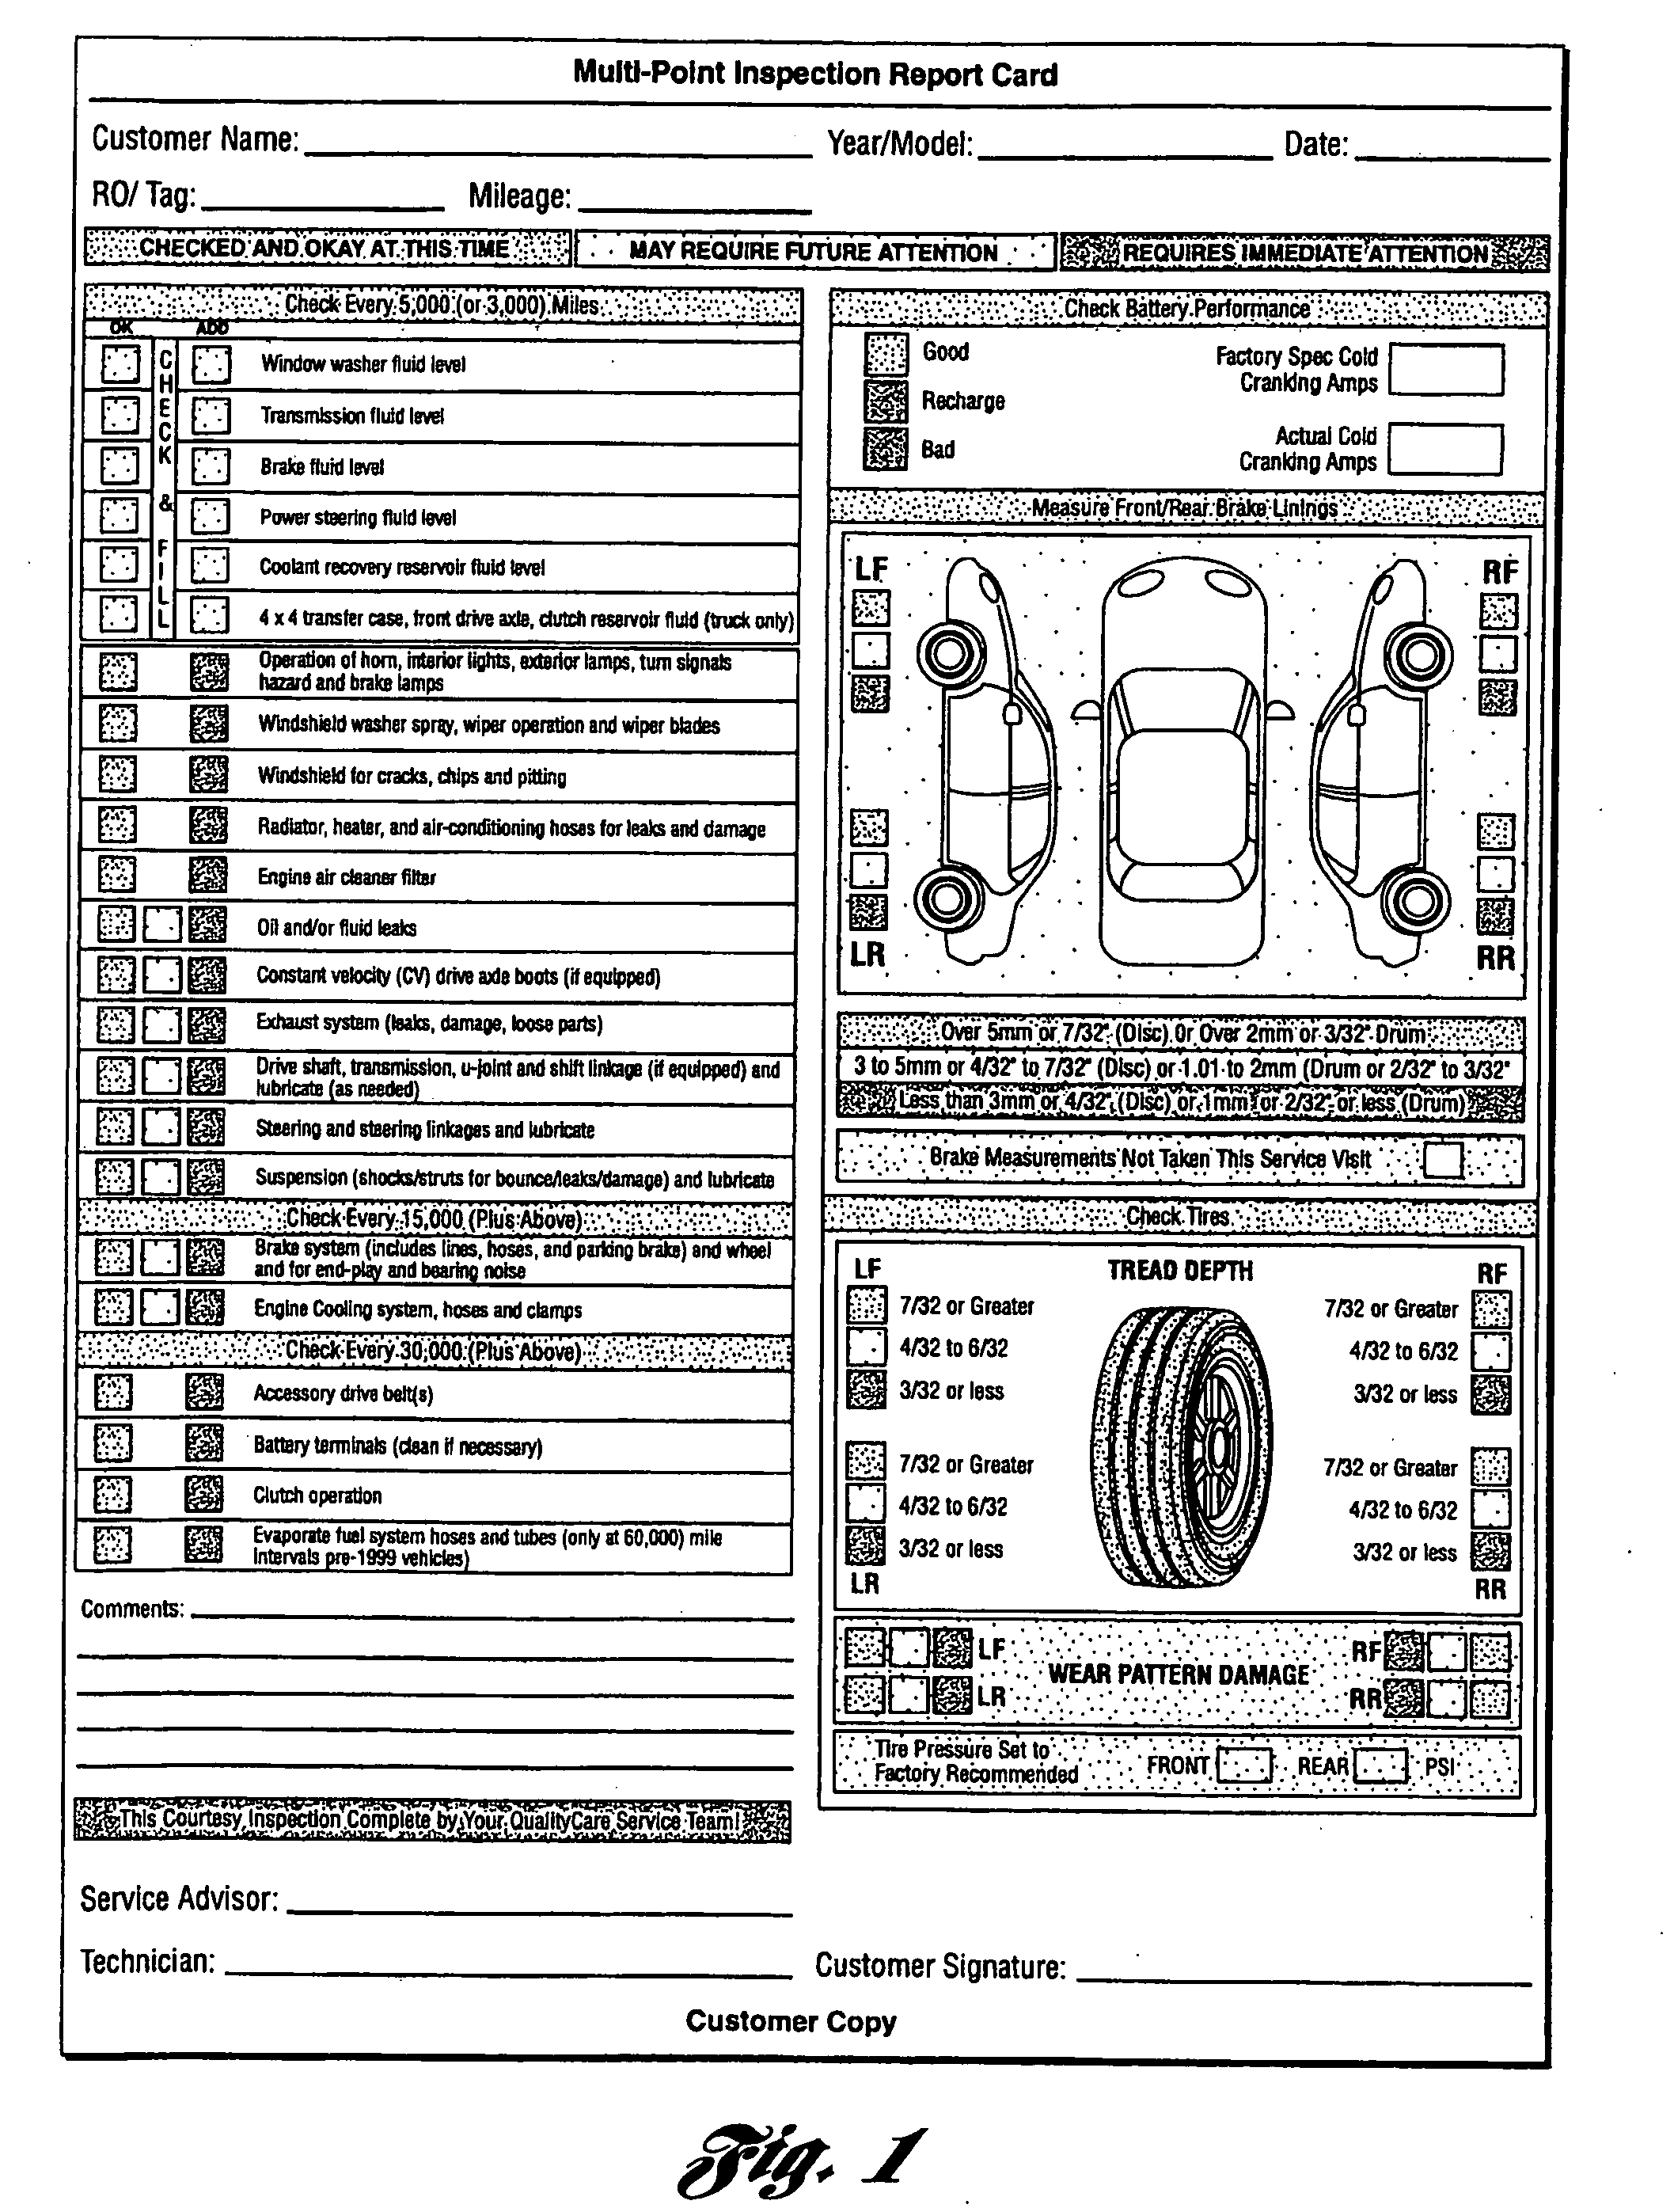 Used Vehicle Inspection Checklist Form | shop bathroom ideas ...